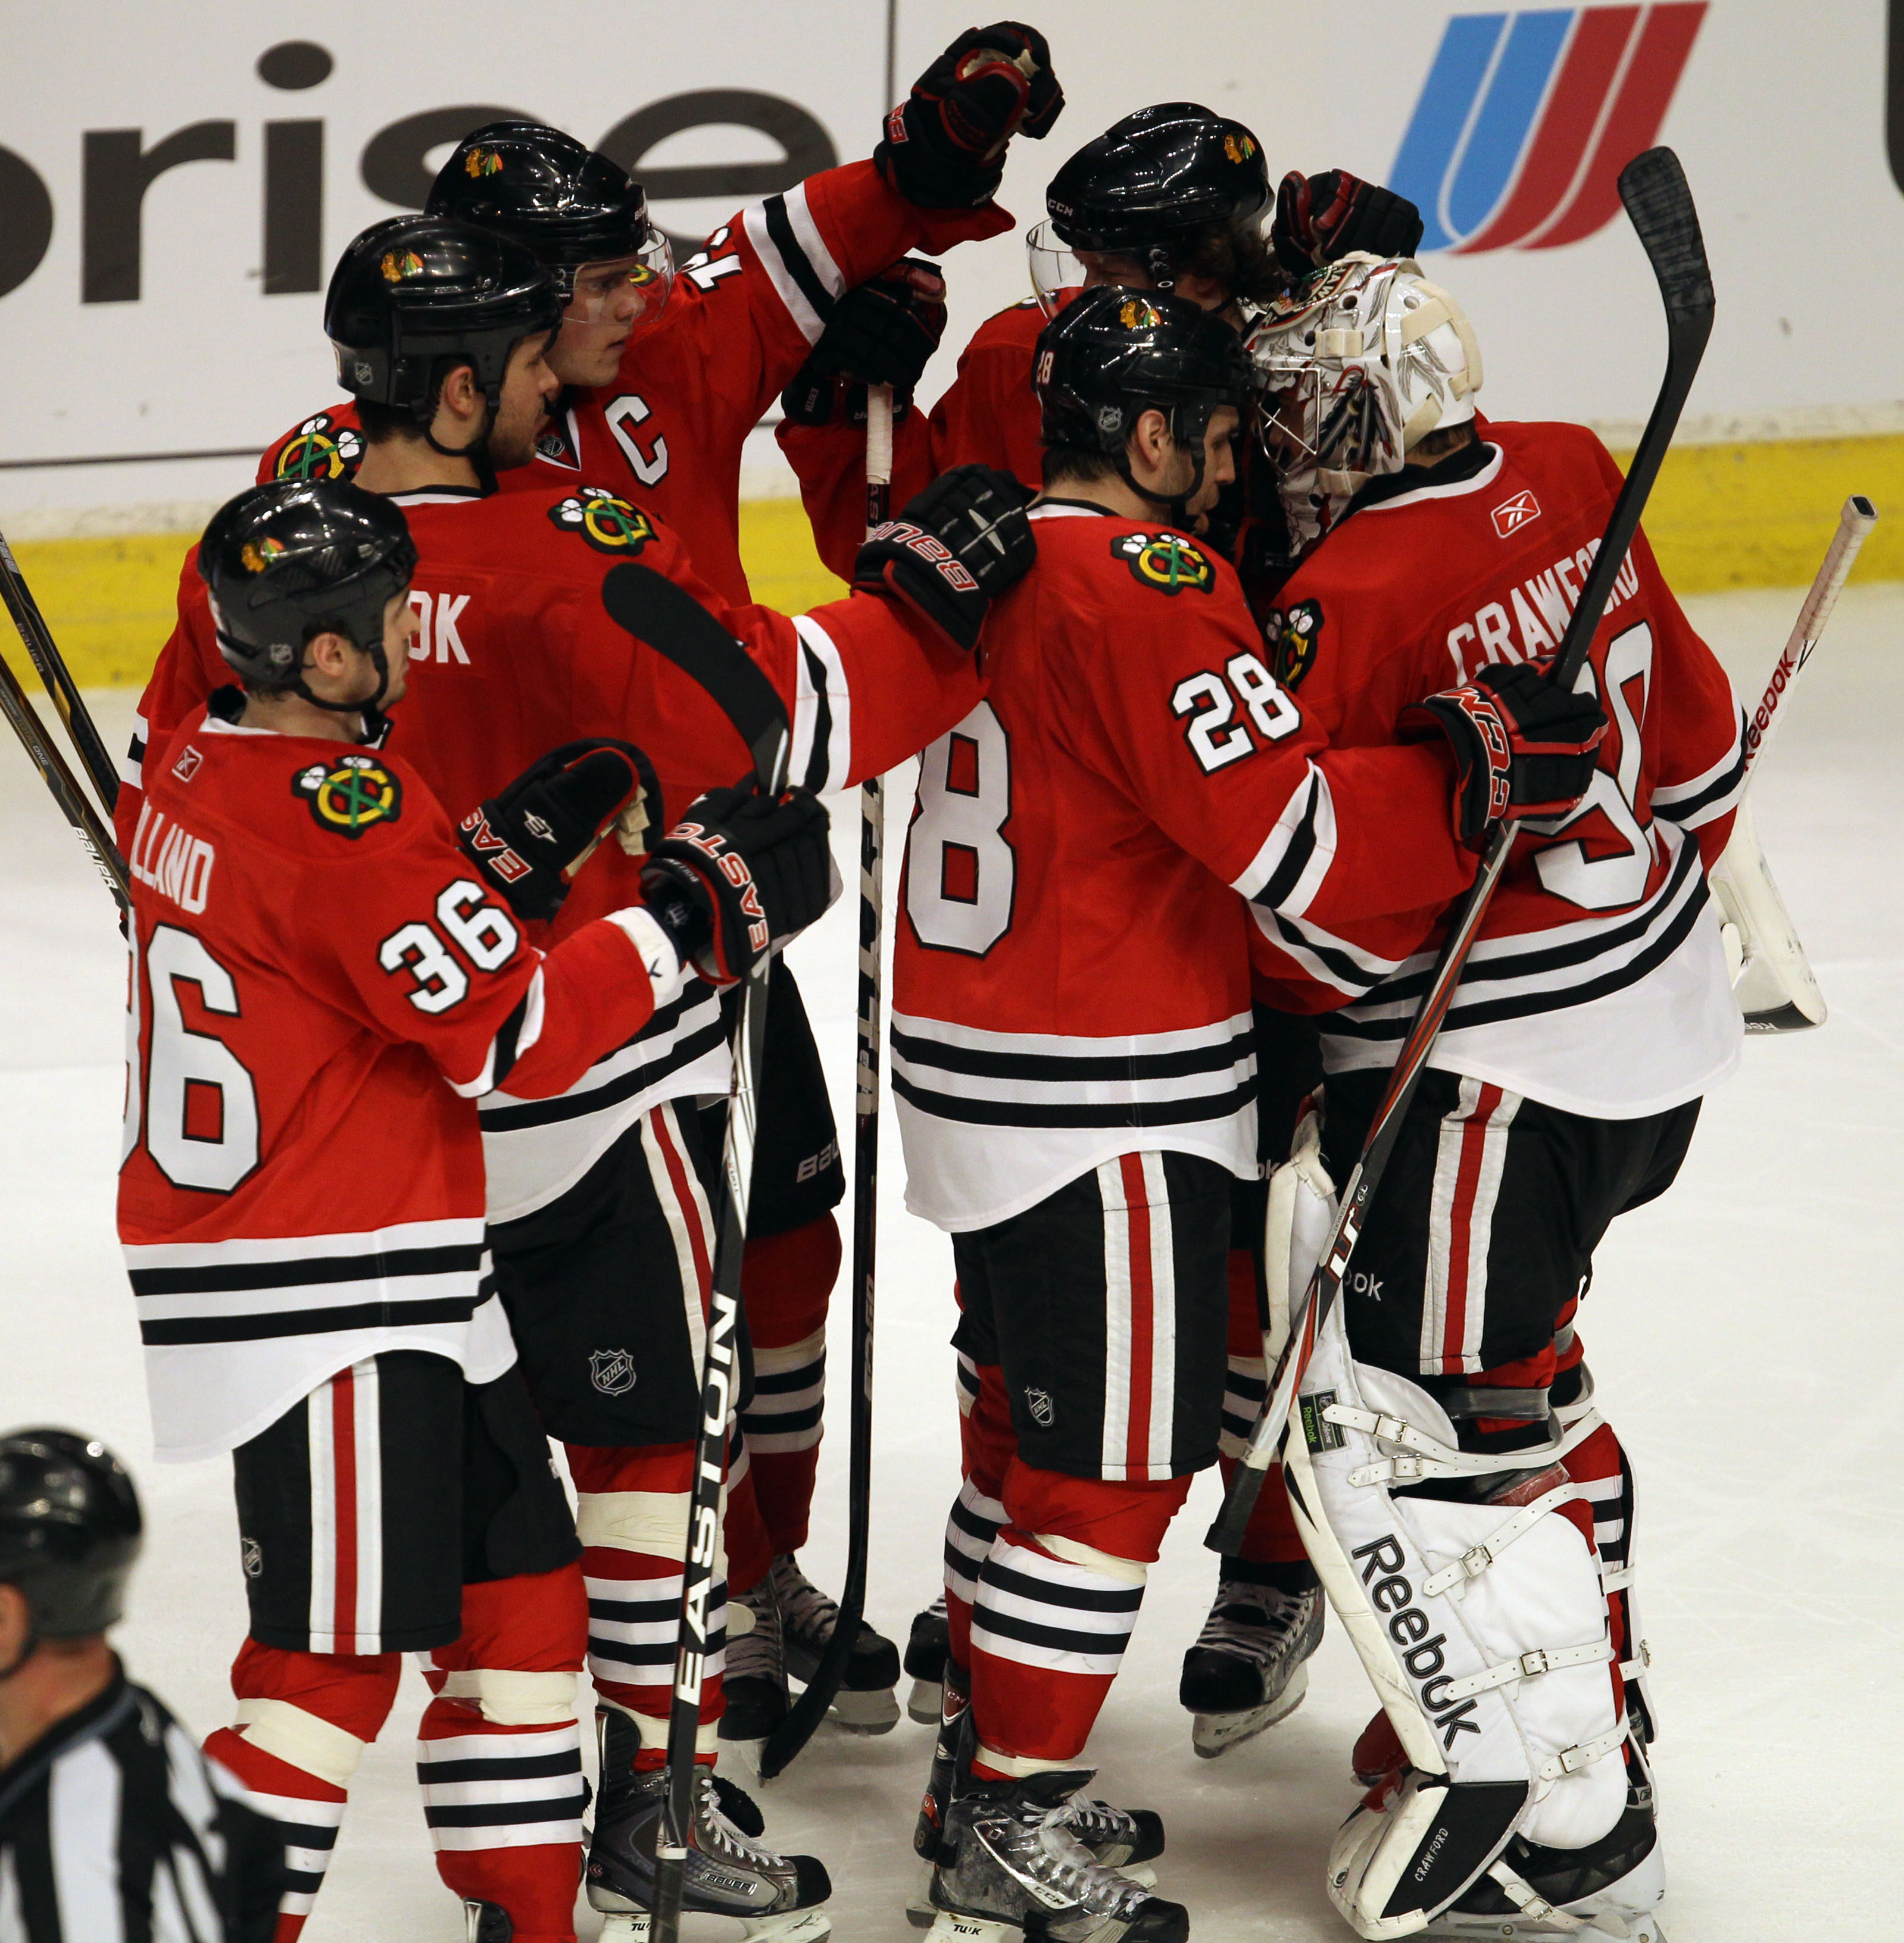 CHICAGO, IL - FEBRUARY 20: Members of the Chicago Blackhawks including Dave Bolland #36, Brent Seabrook #7, Jonathan Toews #19 and Jake Dowell #28 congratulate teammate Corey Crawford #50 after a win over the Pittsburgh Penguins at the United Center on Fe